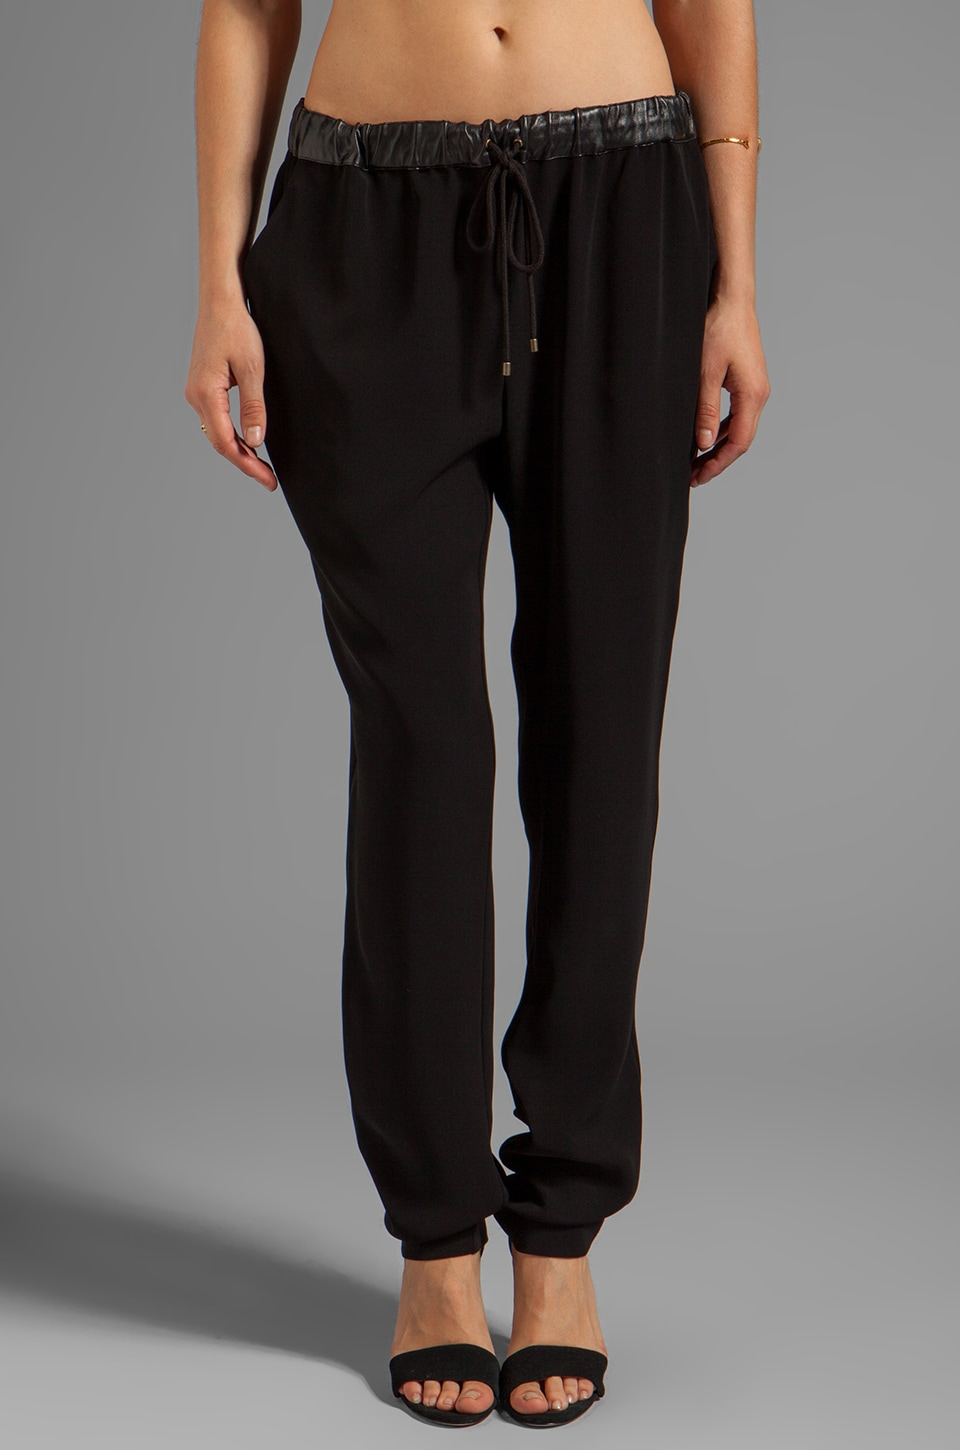 DEREK LAM 10 CROSBY Drawstring Pant in Black